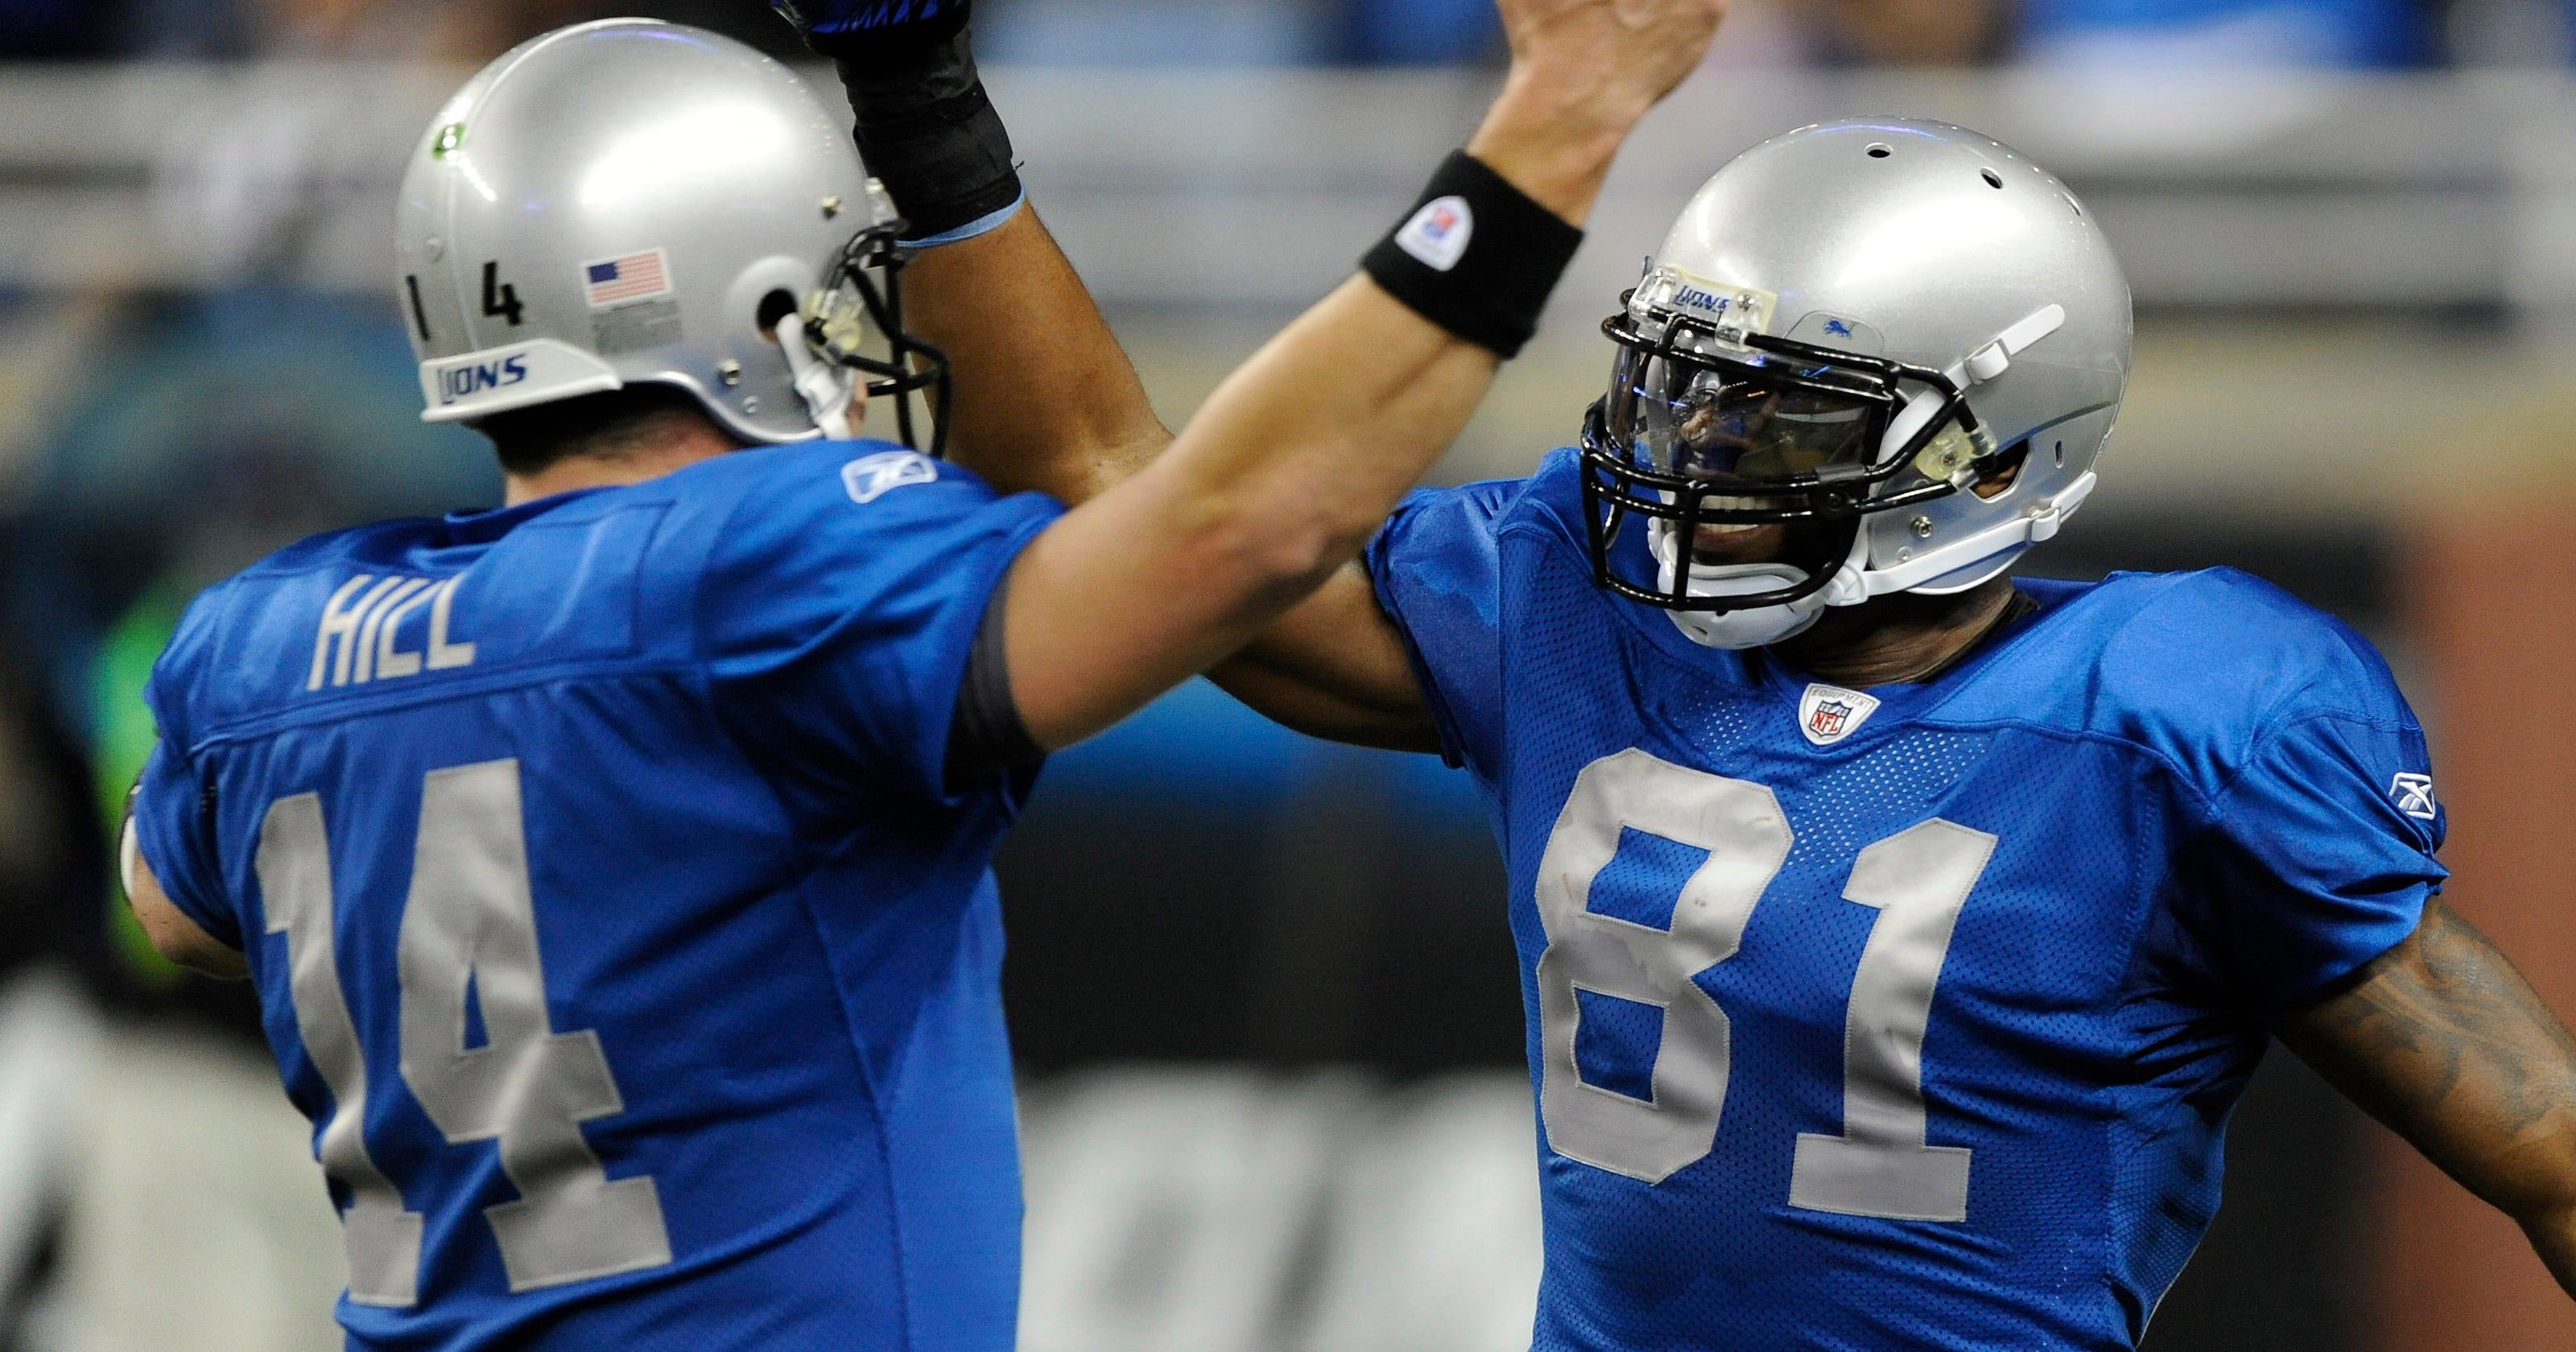 Will Wait Lions' Have Throwback Uniforms To